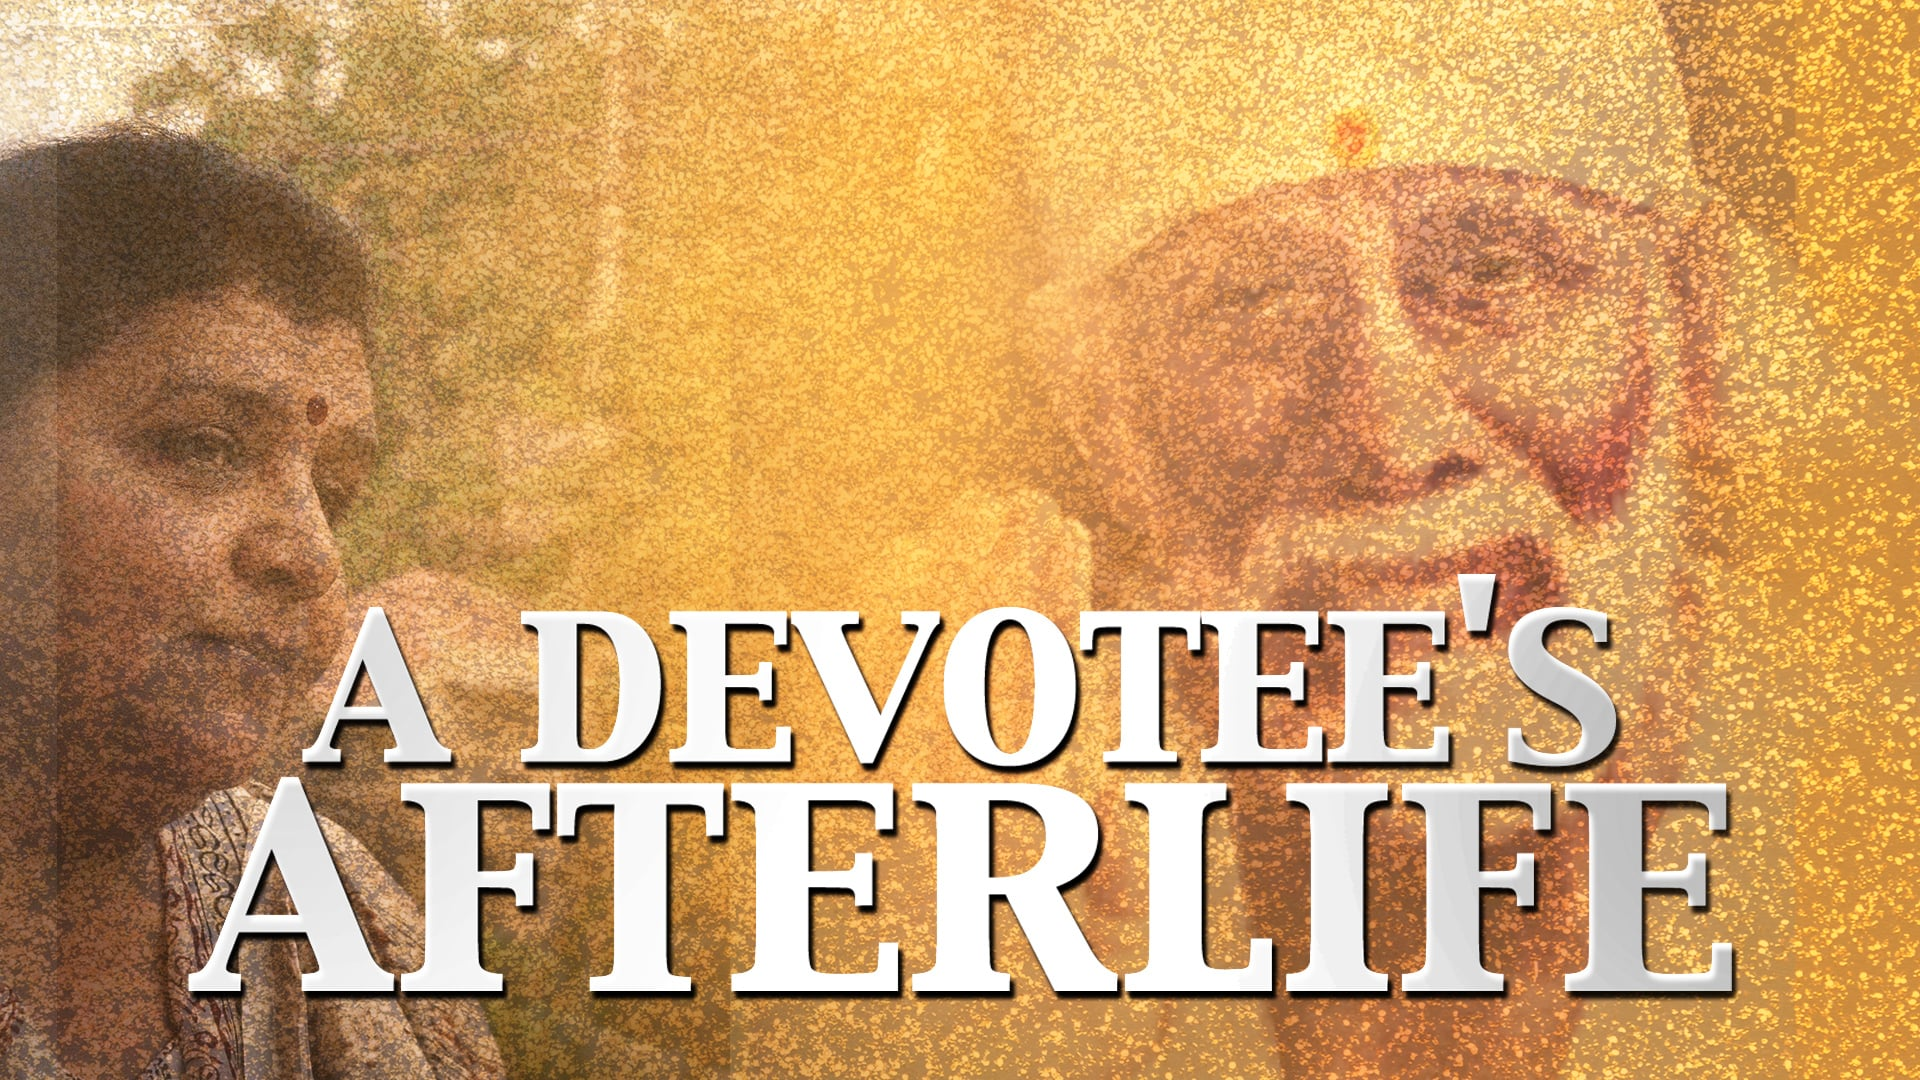 A devotee's Afterlife